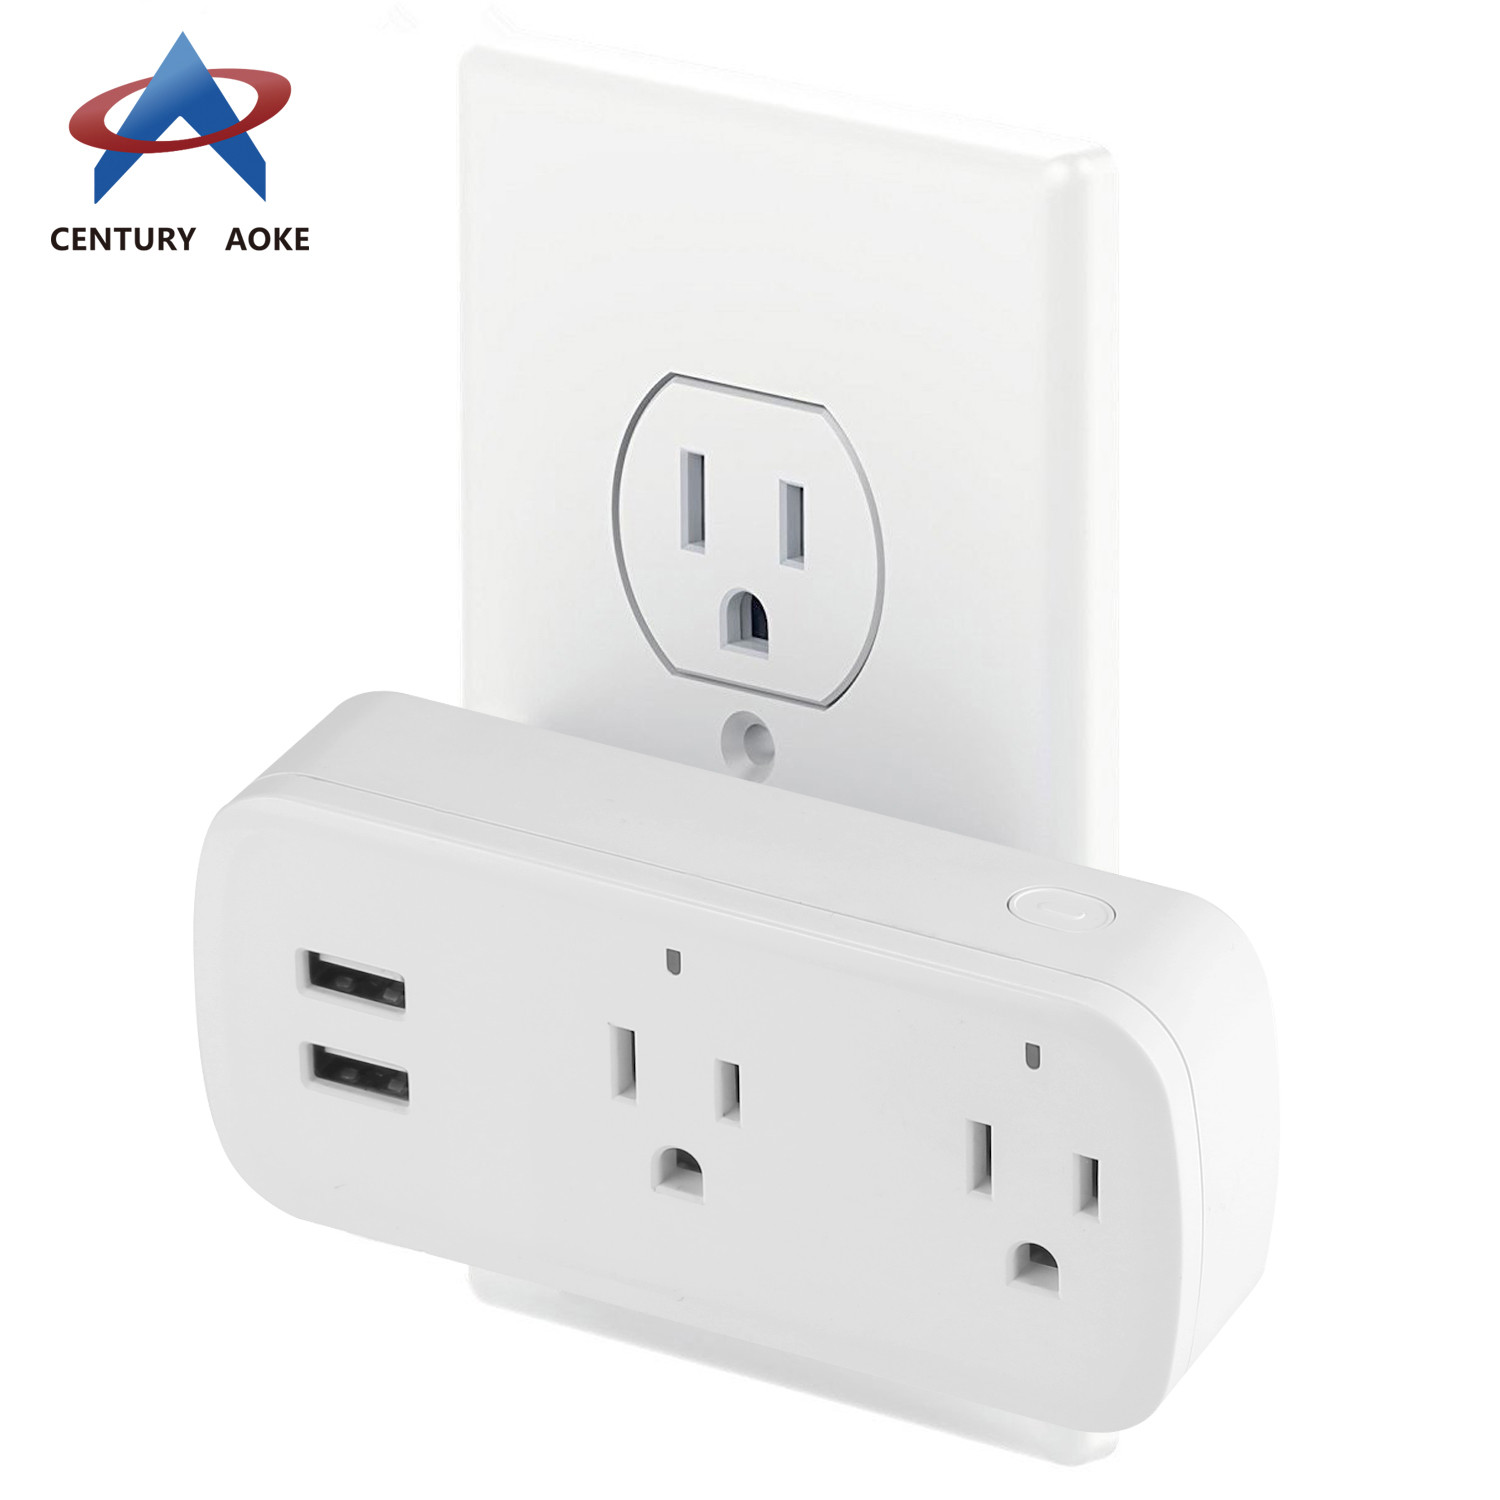 US smart socket best smart outlet AK-P22W-01F